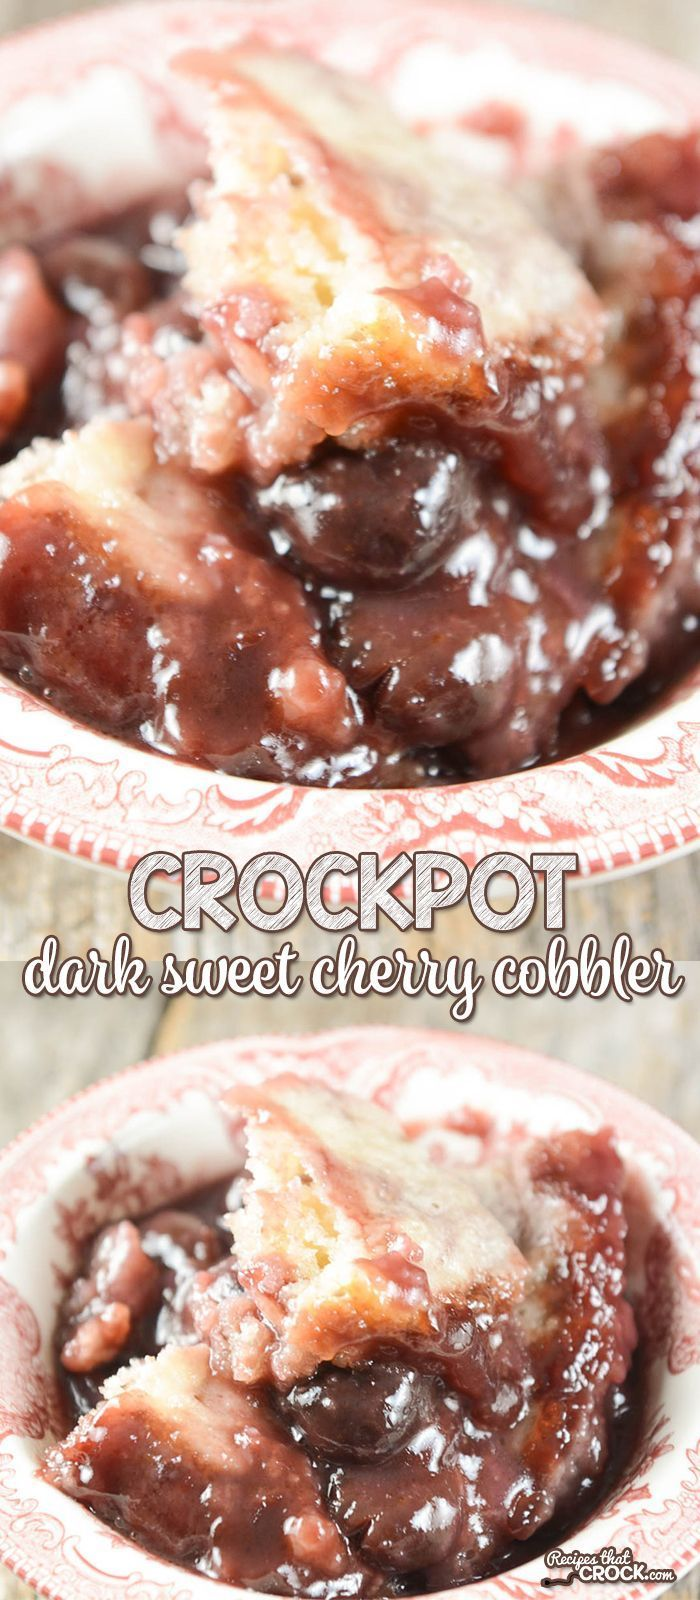 Are you a fan of dark sweet cherries? Our Crock Pot Dark Sweet Cherry Cobbler is…